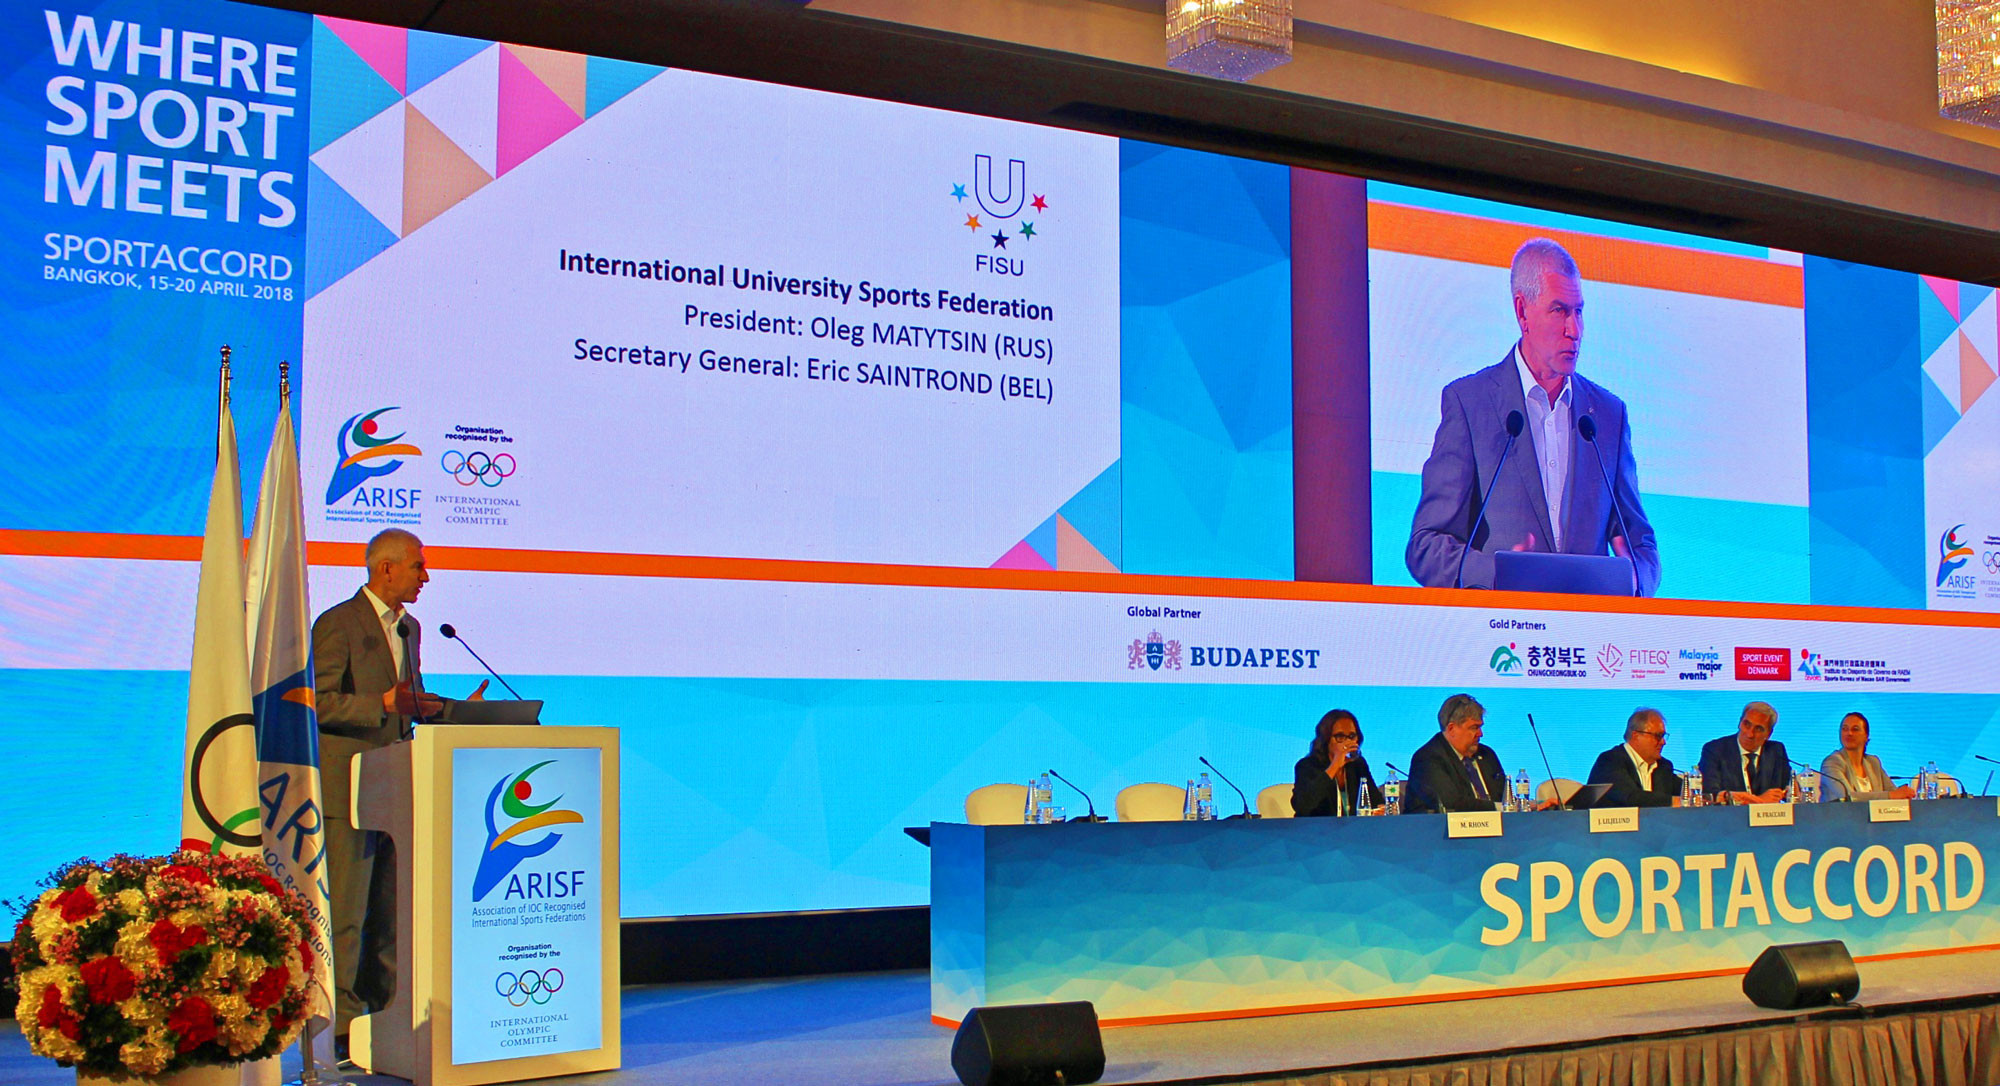 FISU President highlights organisation's ambition for deeper integration of university sports into Olympic Movement